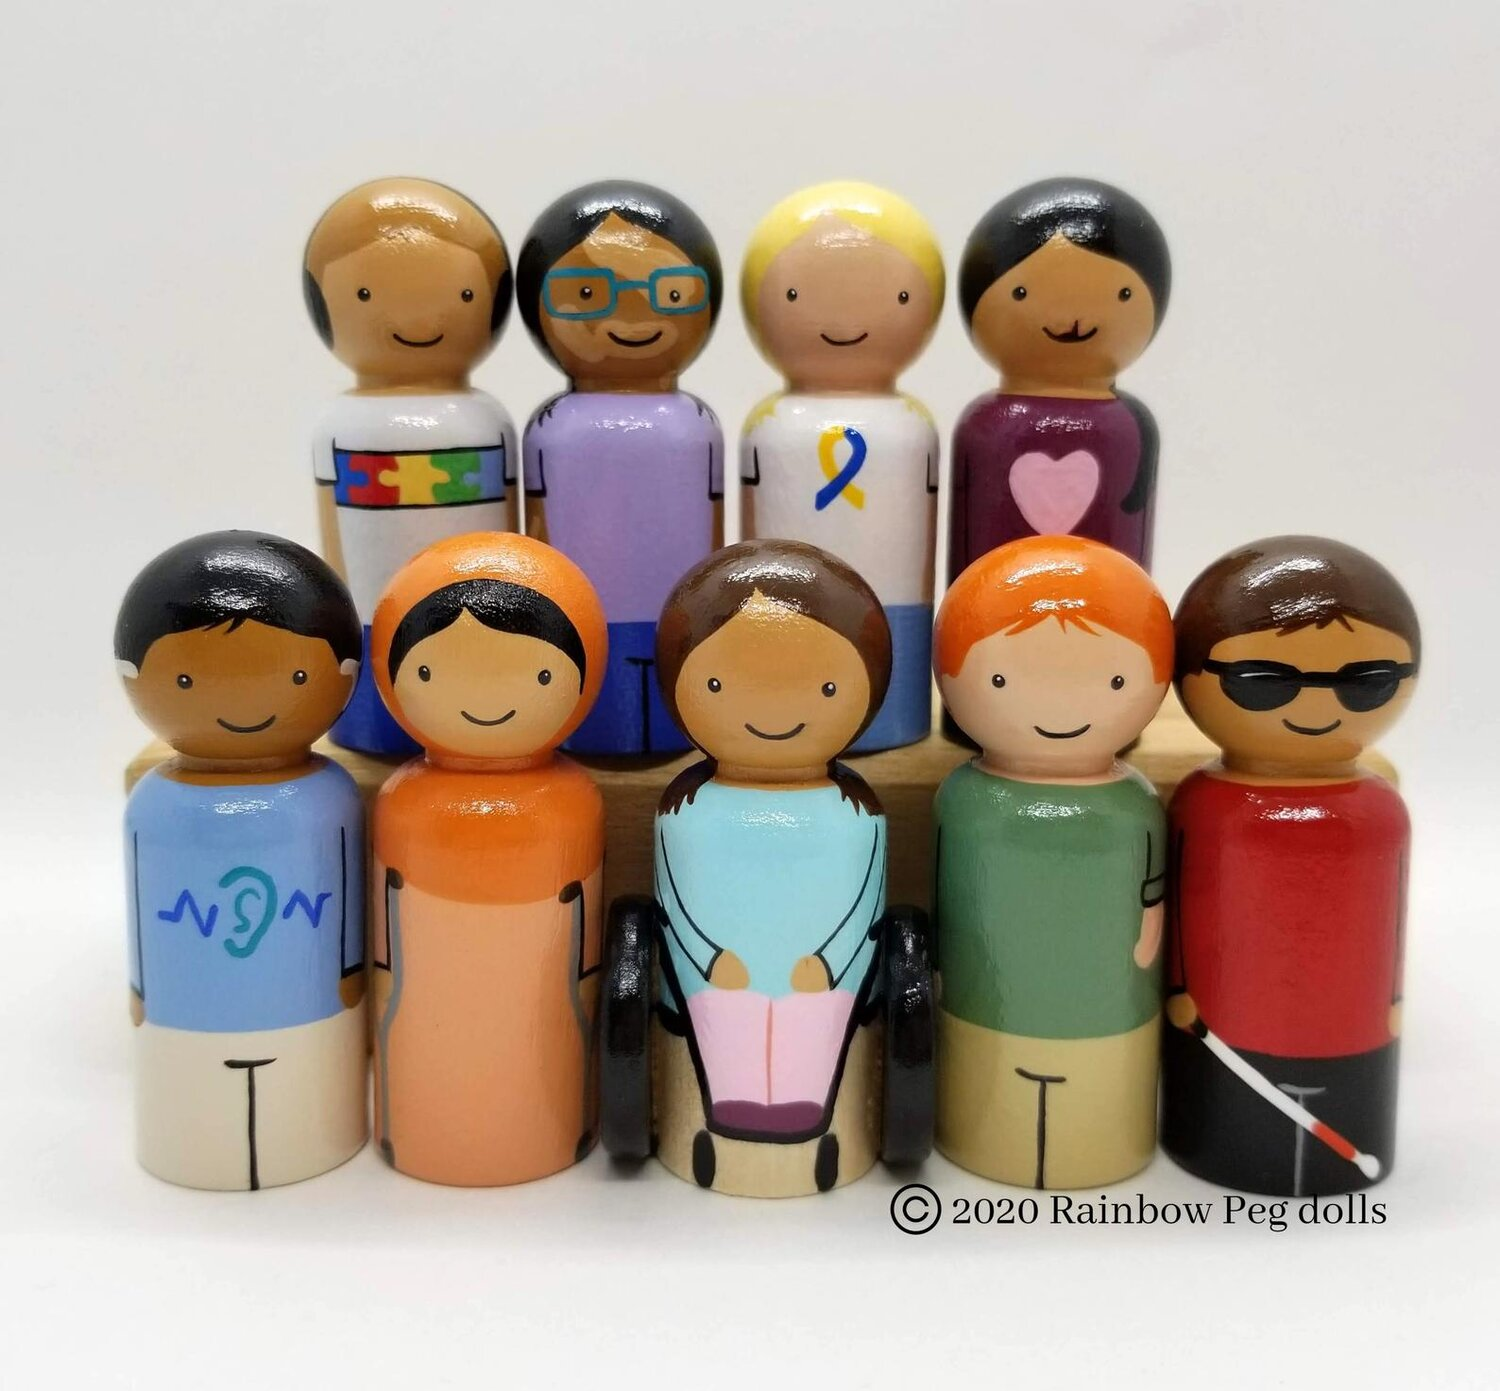 [Image Description: Nine peg dolls of varying abilities. From the top left to bottom right there is a doll with autism, vitiligo, a yellow and blue ribbon (could not find the significance of this), a cleft palate, hearing aids, crutches, a wheelchair, a smaller arm, and blindness.]